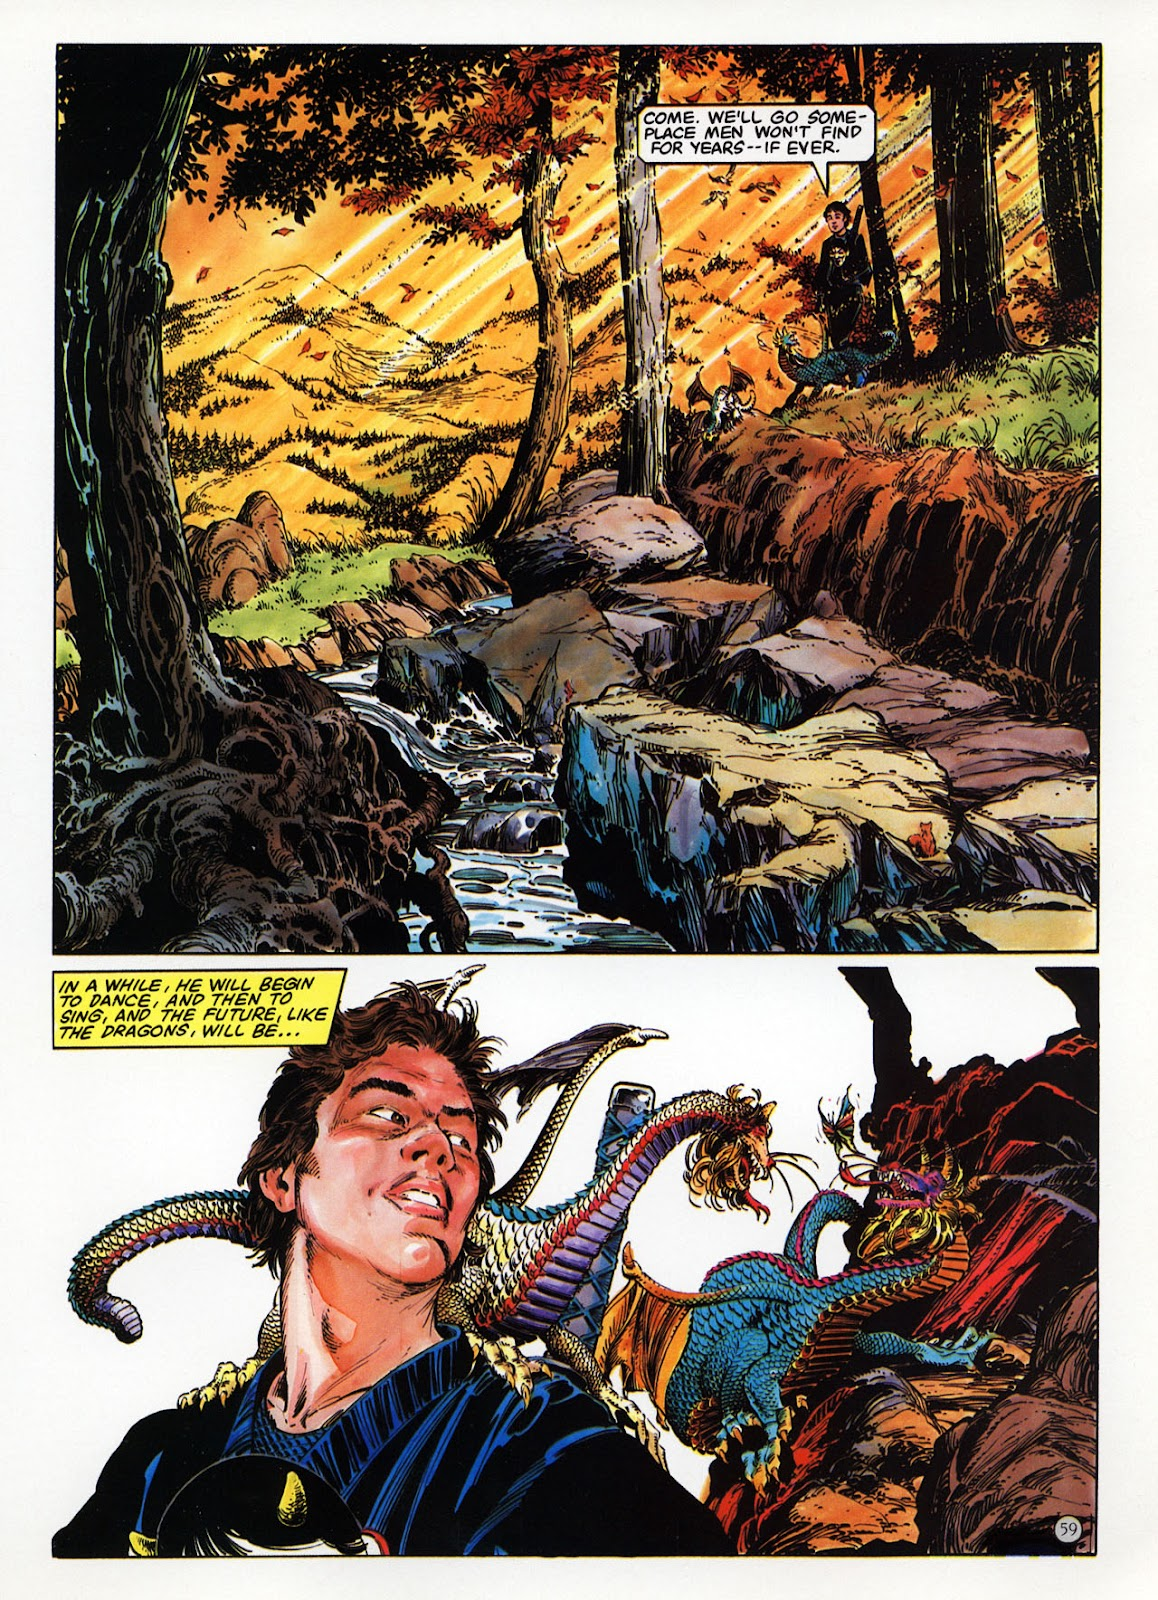 Read online Epic Graphic Novel: Last of the Dragons comic -  Issue # Full - 60